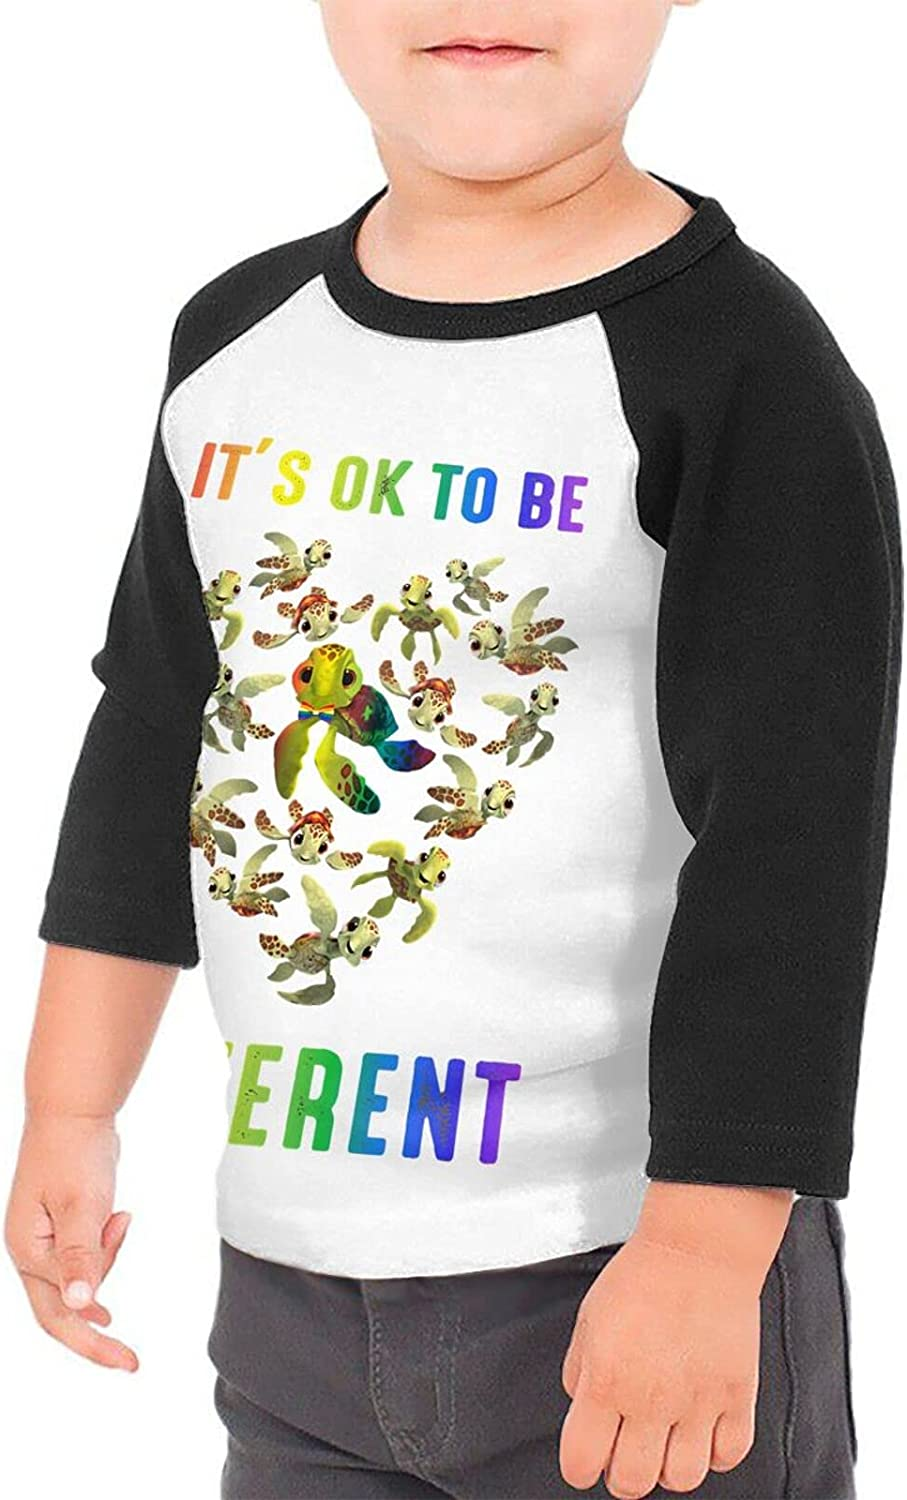 Turtle Love to Be Different Lgb T-Shirts Novelty for Youth Tees with Cool Designs